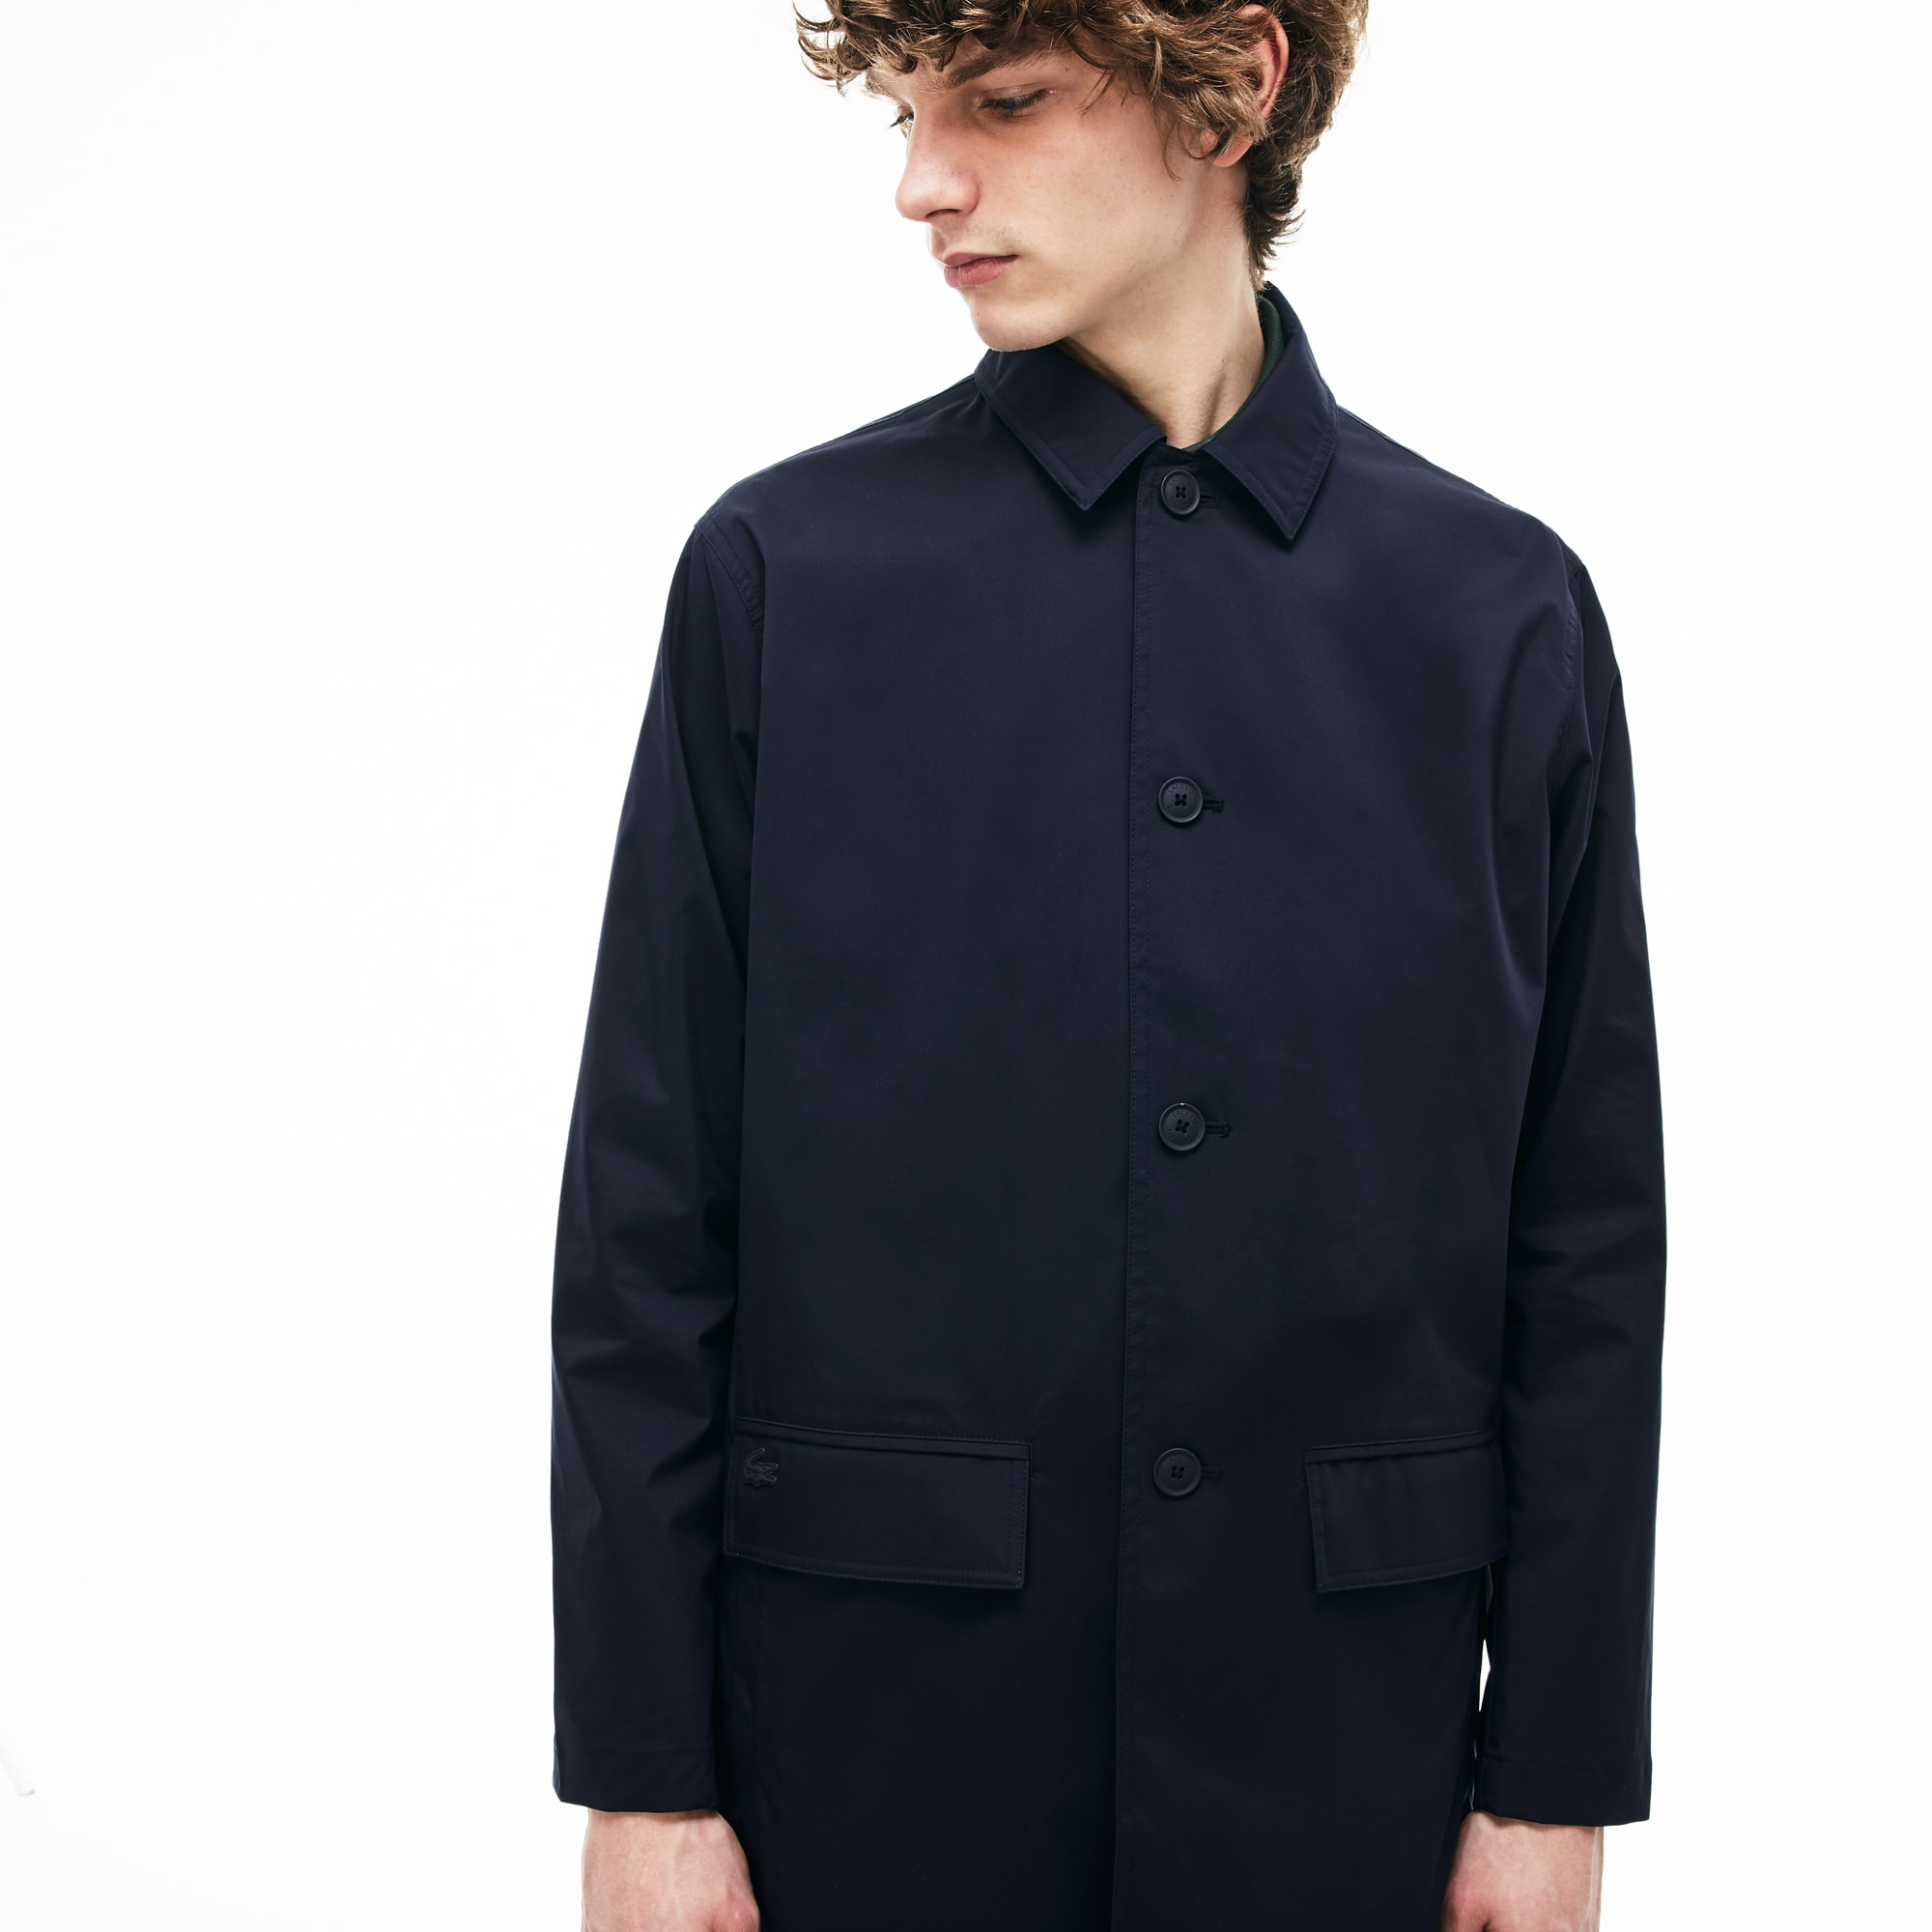 Mens Jackets And Coats Lacoste Outerwear Lacoste